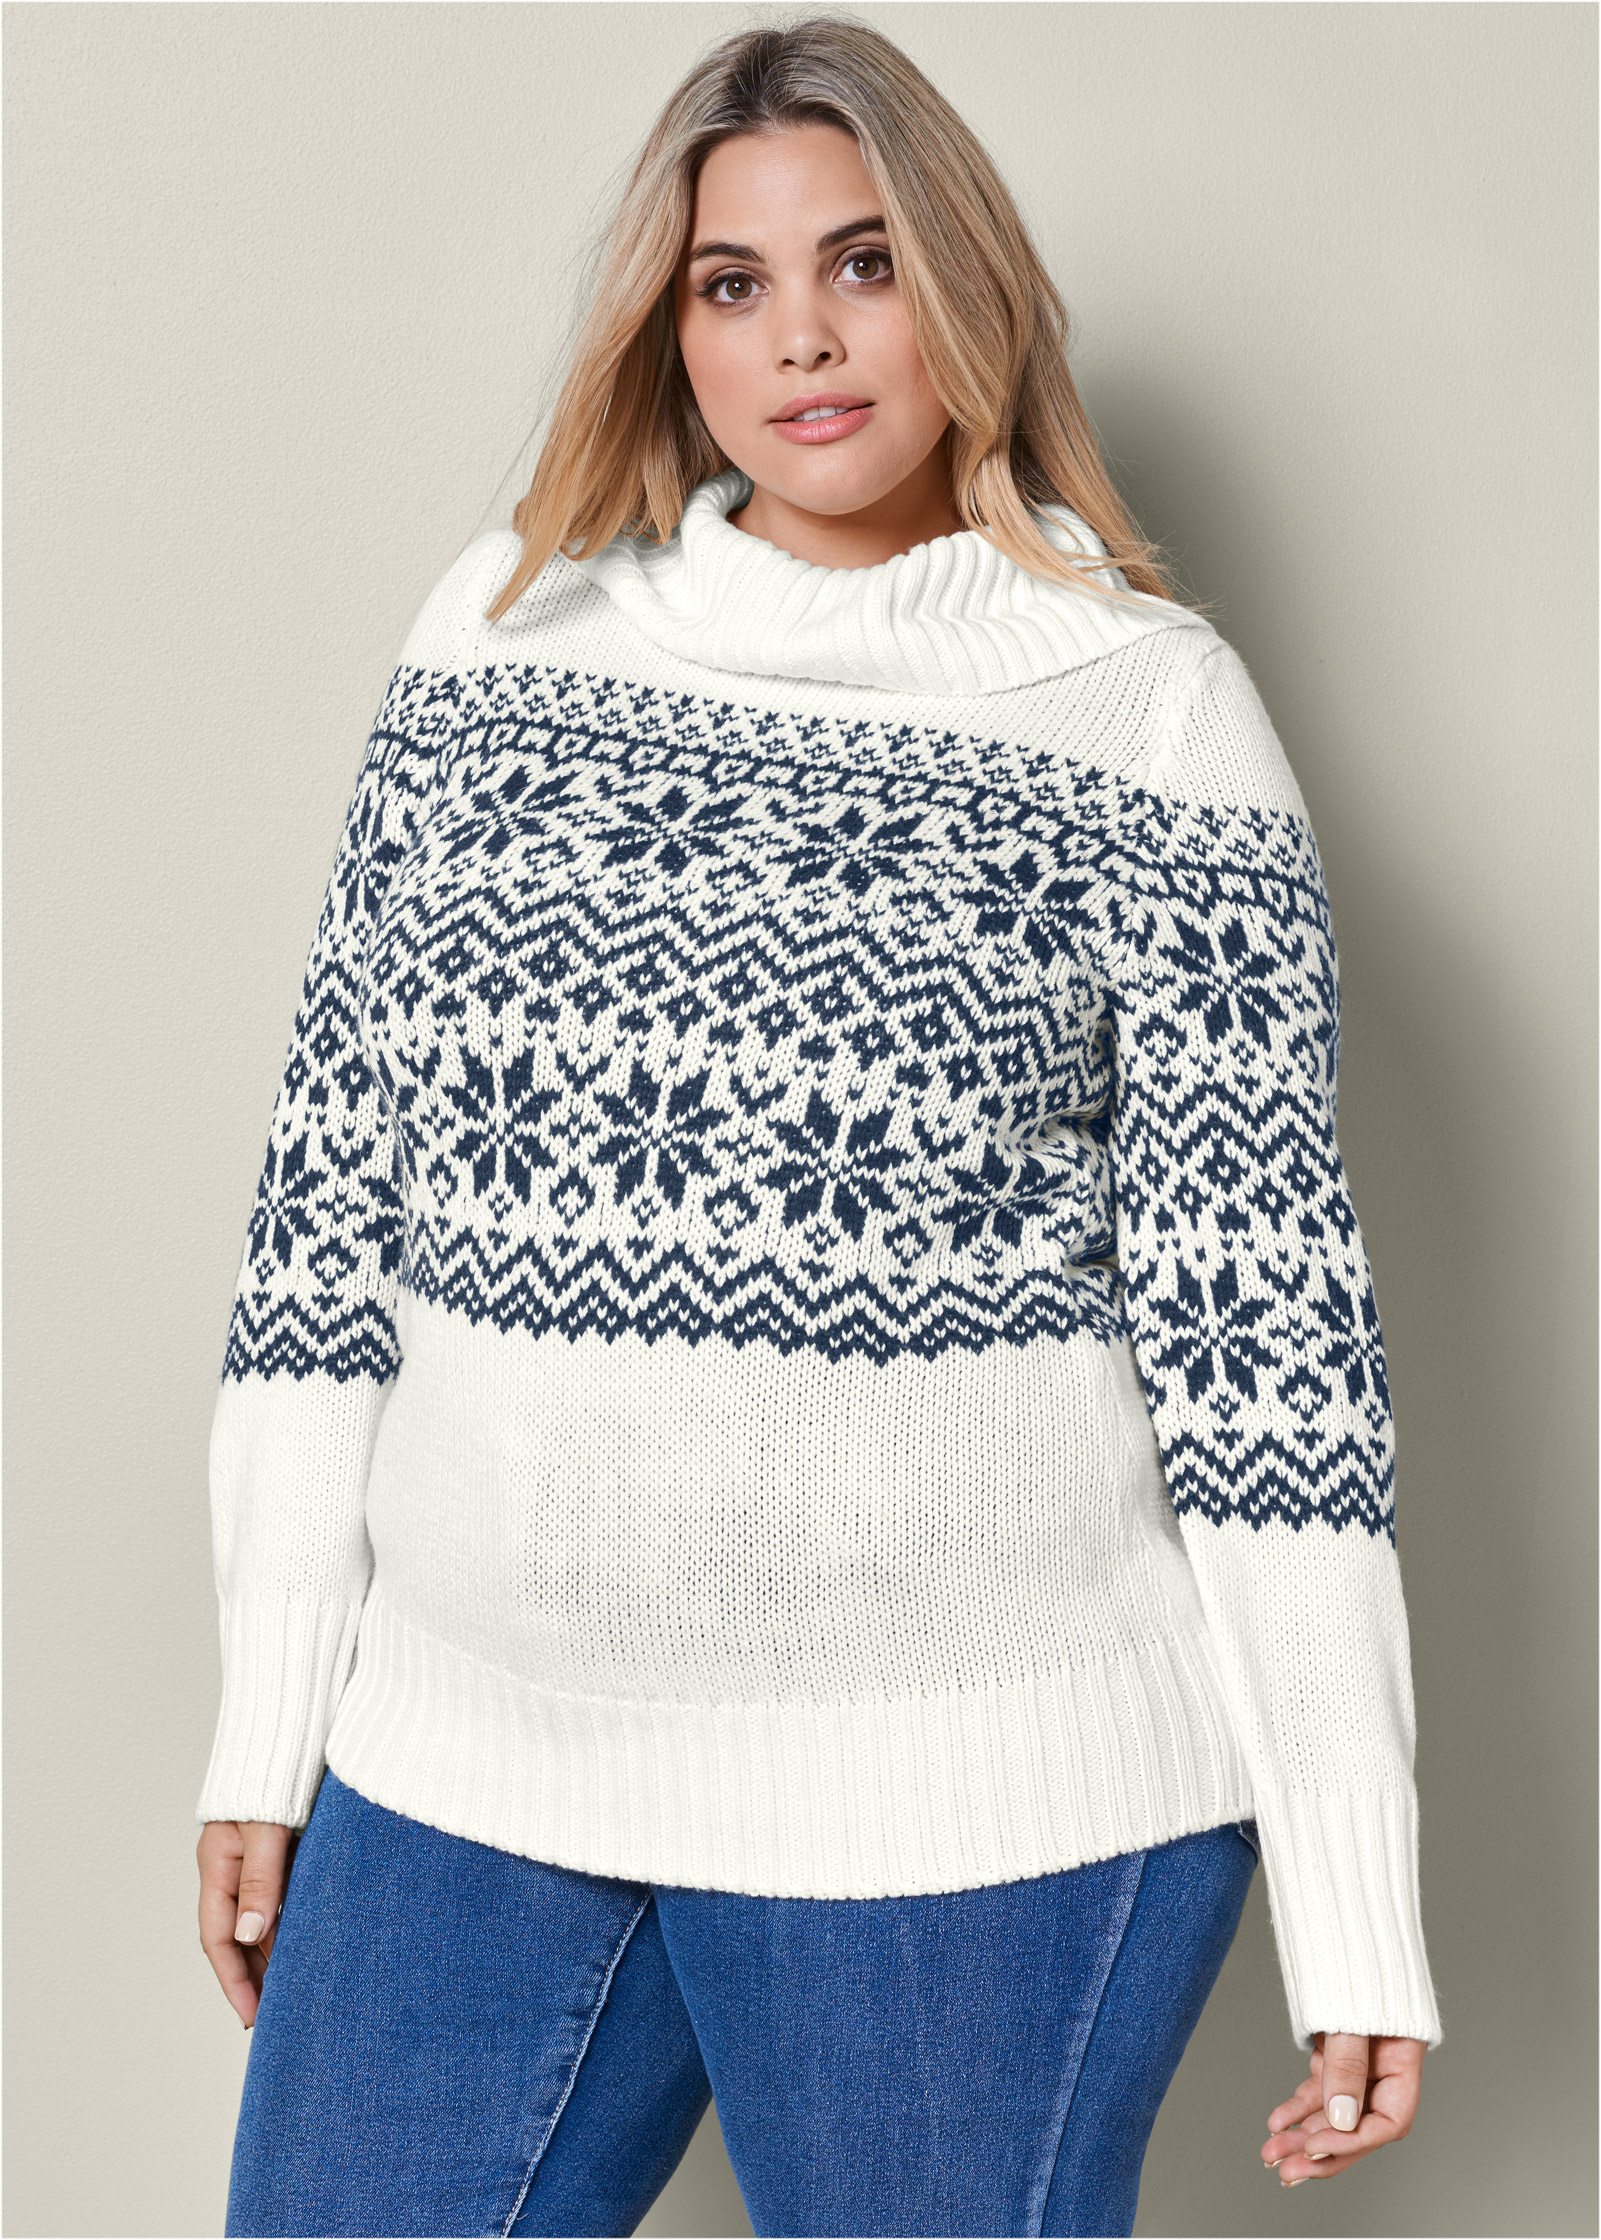 Plus Size TURTLENECK SWEATER in Cream Multi | VENUS